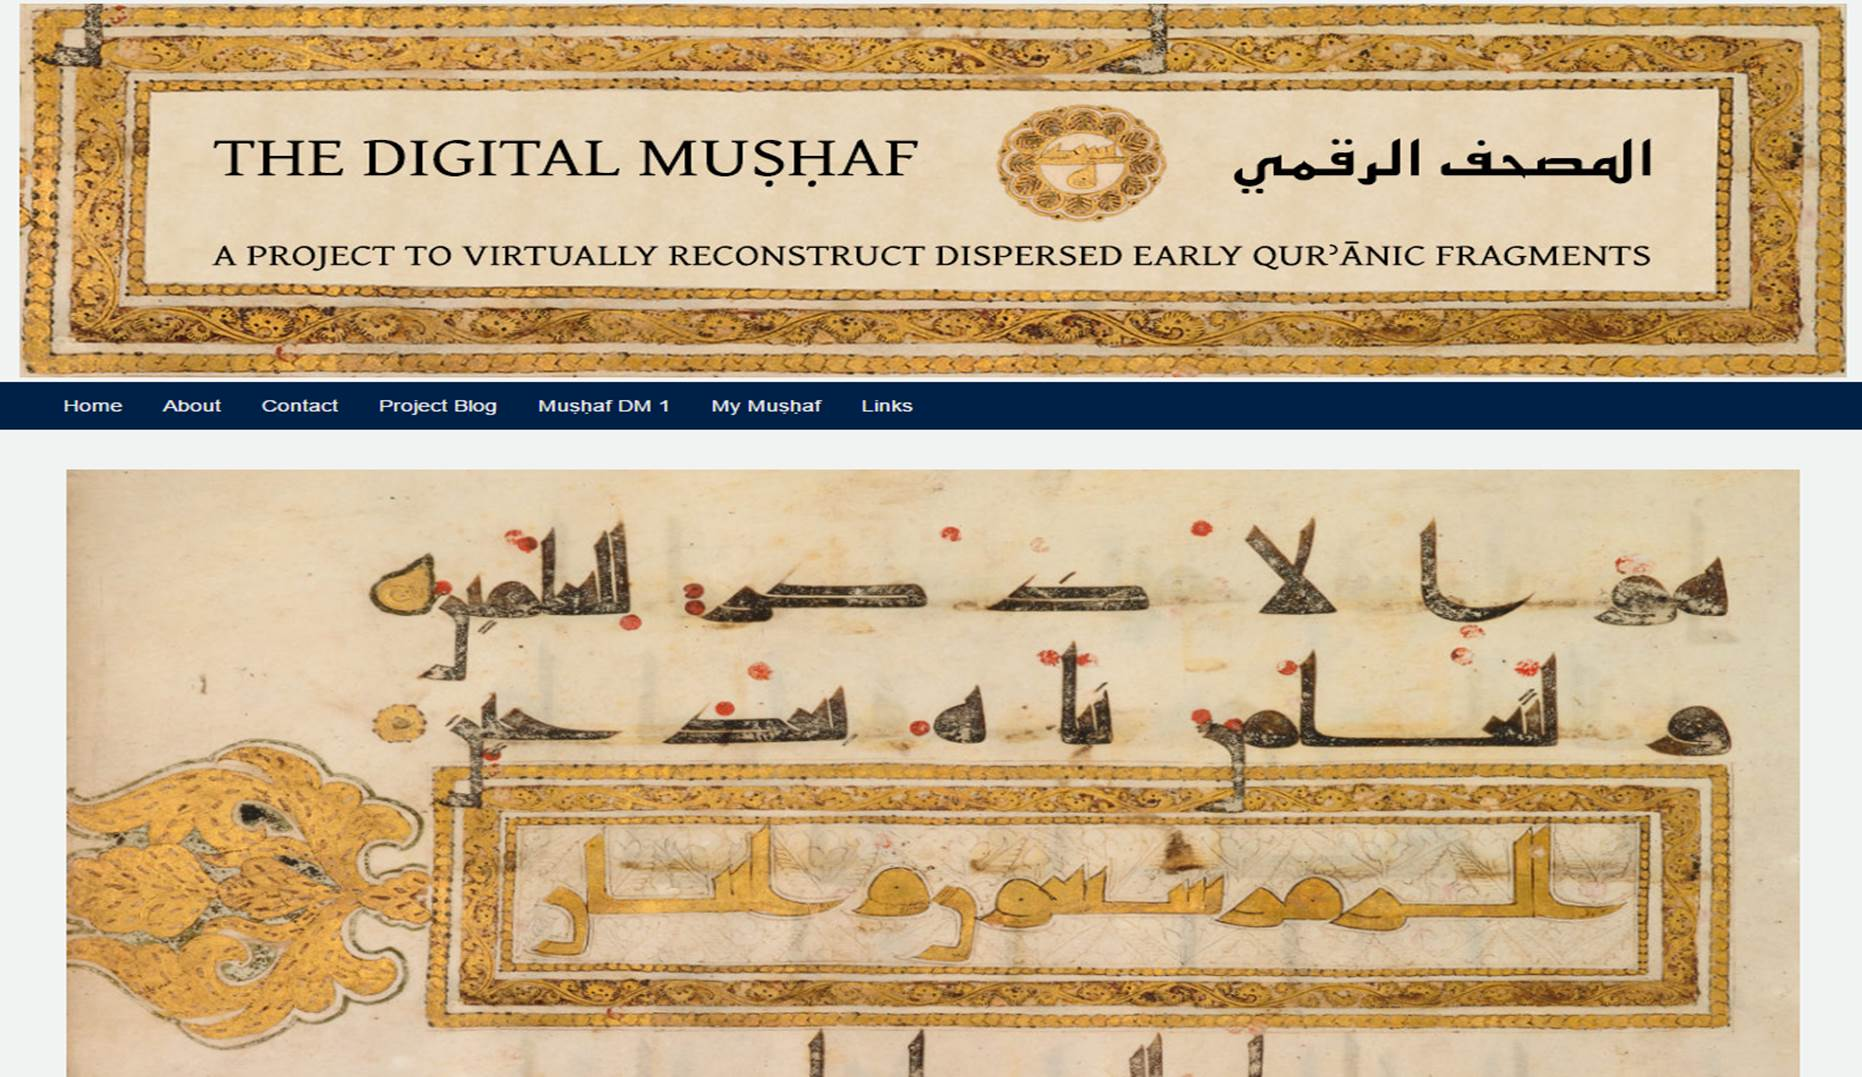 screenshot of site homepage with illuminated header and text page in early Abbasid Arabic script in black, gold and red